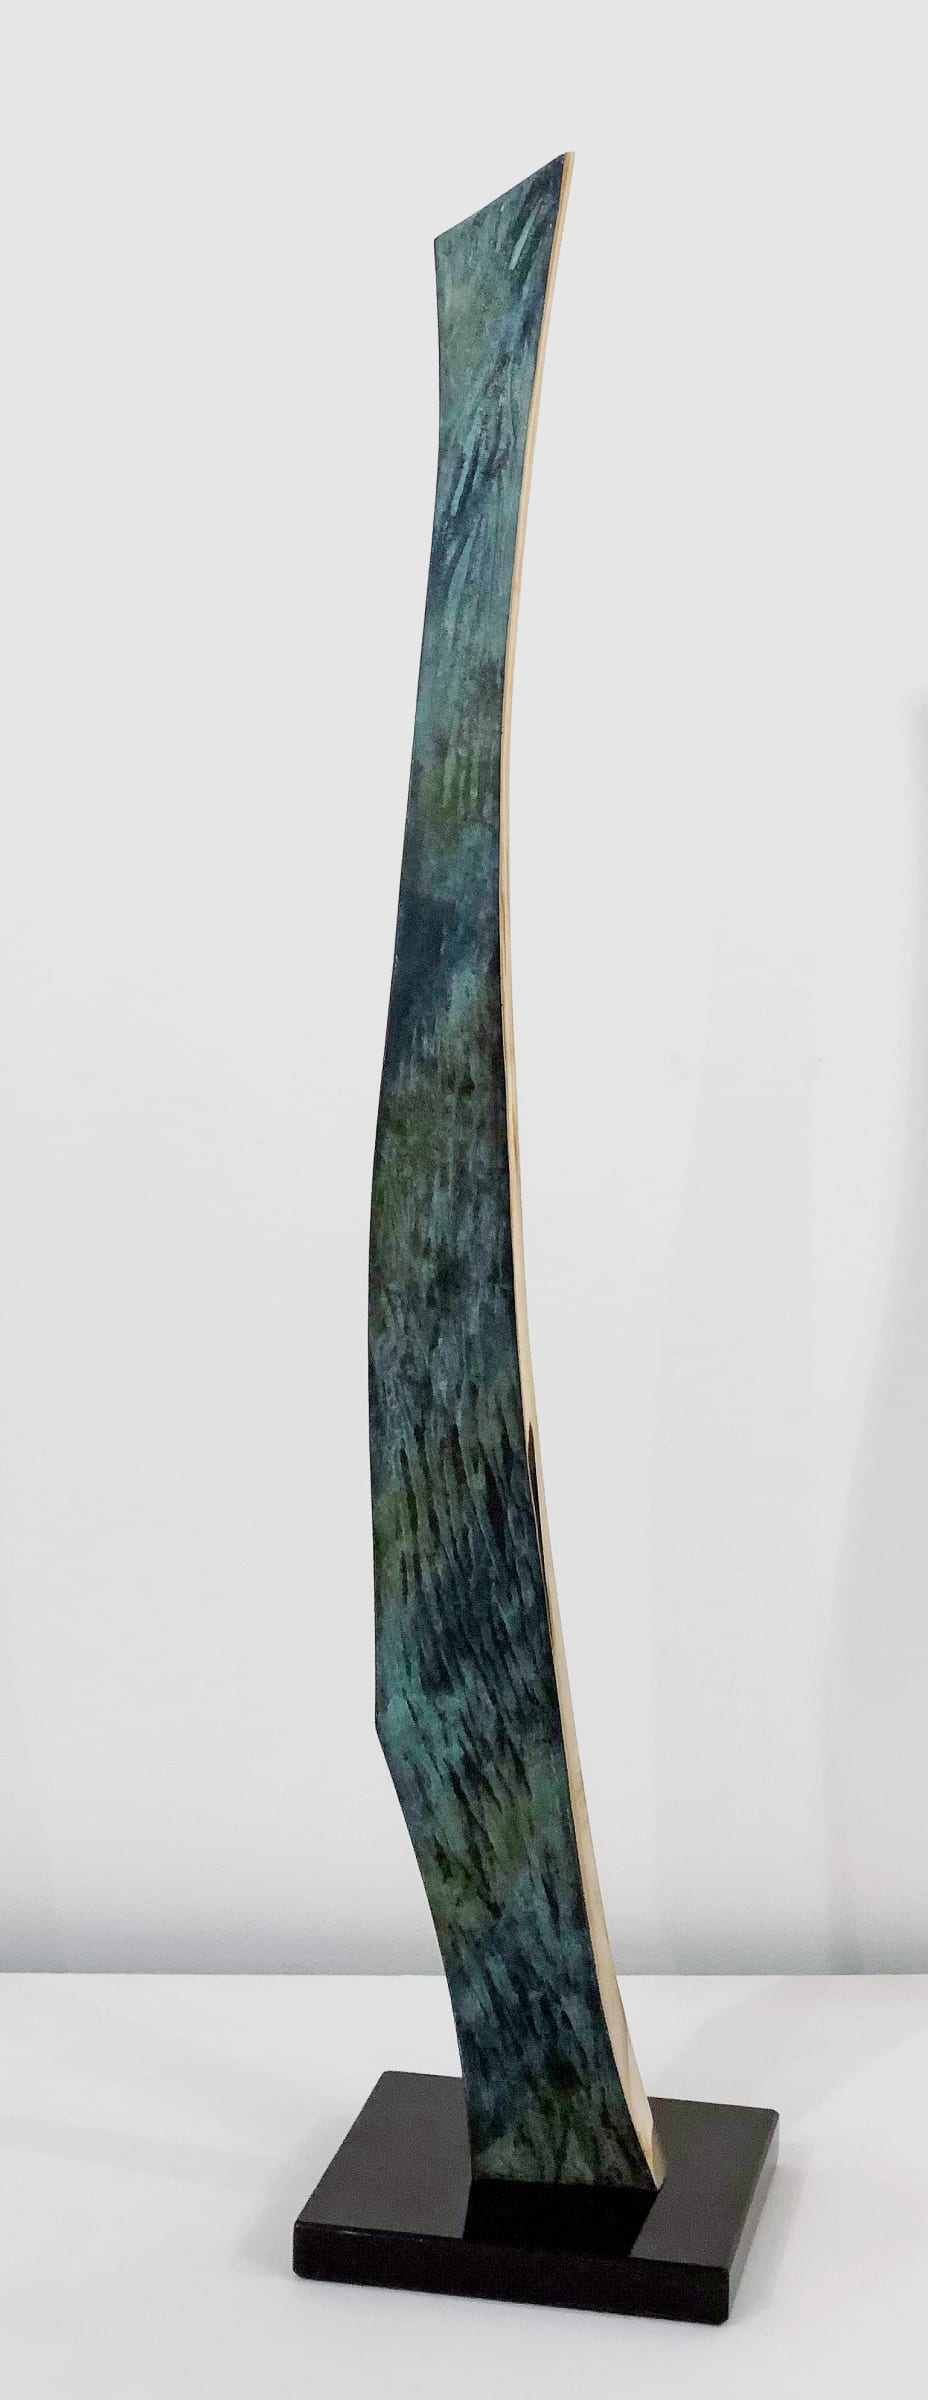 """<span class=""""link fancybox-details-link""""><a href=""""/artists/69-margaret-lovell-d.litt.-hon-frbs-rwa/works/7571-margaret-lovell-d.litt.-hon-frbs-rwa-omaha-verde-2019/"""">View Detail Page</a></span><div class=""""artist""""><strong>Margaret Lovell D.Litt. Hon FRBS RWA</strong></div> b. 1939 <div class=""""title""""><em>Omaha Verde</em>, 2019</div> <div class=""""signed_and_dated"""">Stamped<br /> Patinated bronze on slate base</div> <div class=""""dimensions"""">h. 72.5 cm x w. 15 cm (base)</div> <div class=""""edition_details"""">Unique</div><div class=""""price"""">£4,000.00</div><div class=""""copyright_line"""">Copyright The Artist</div>"""